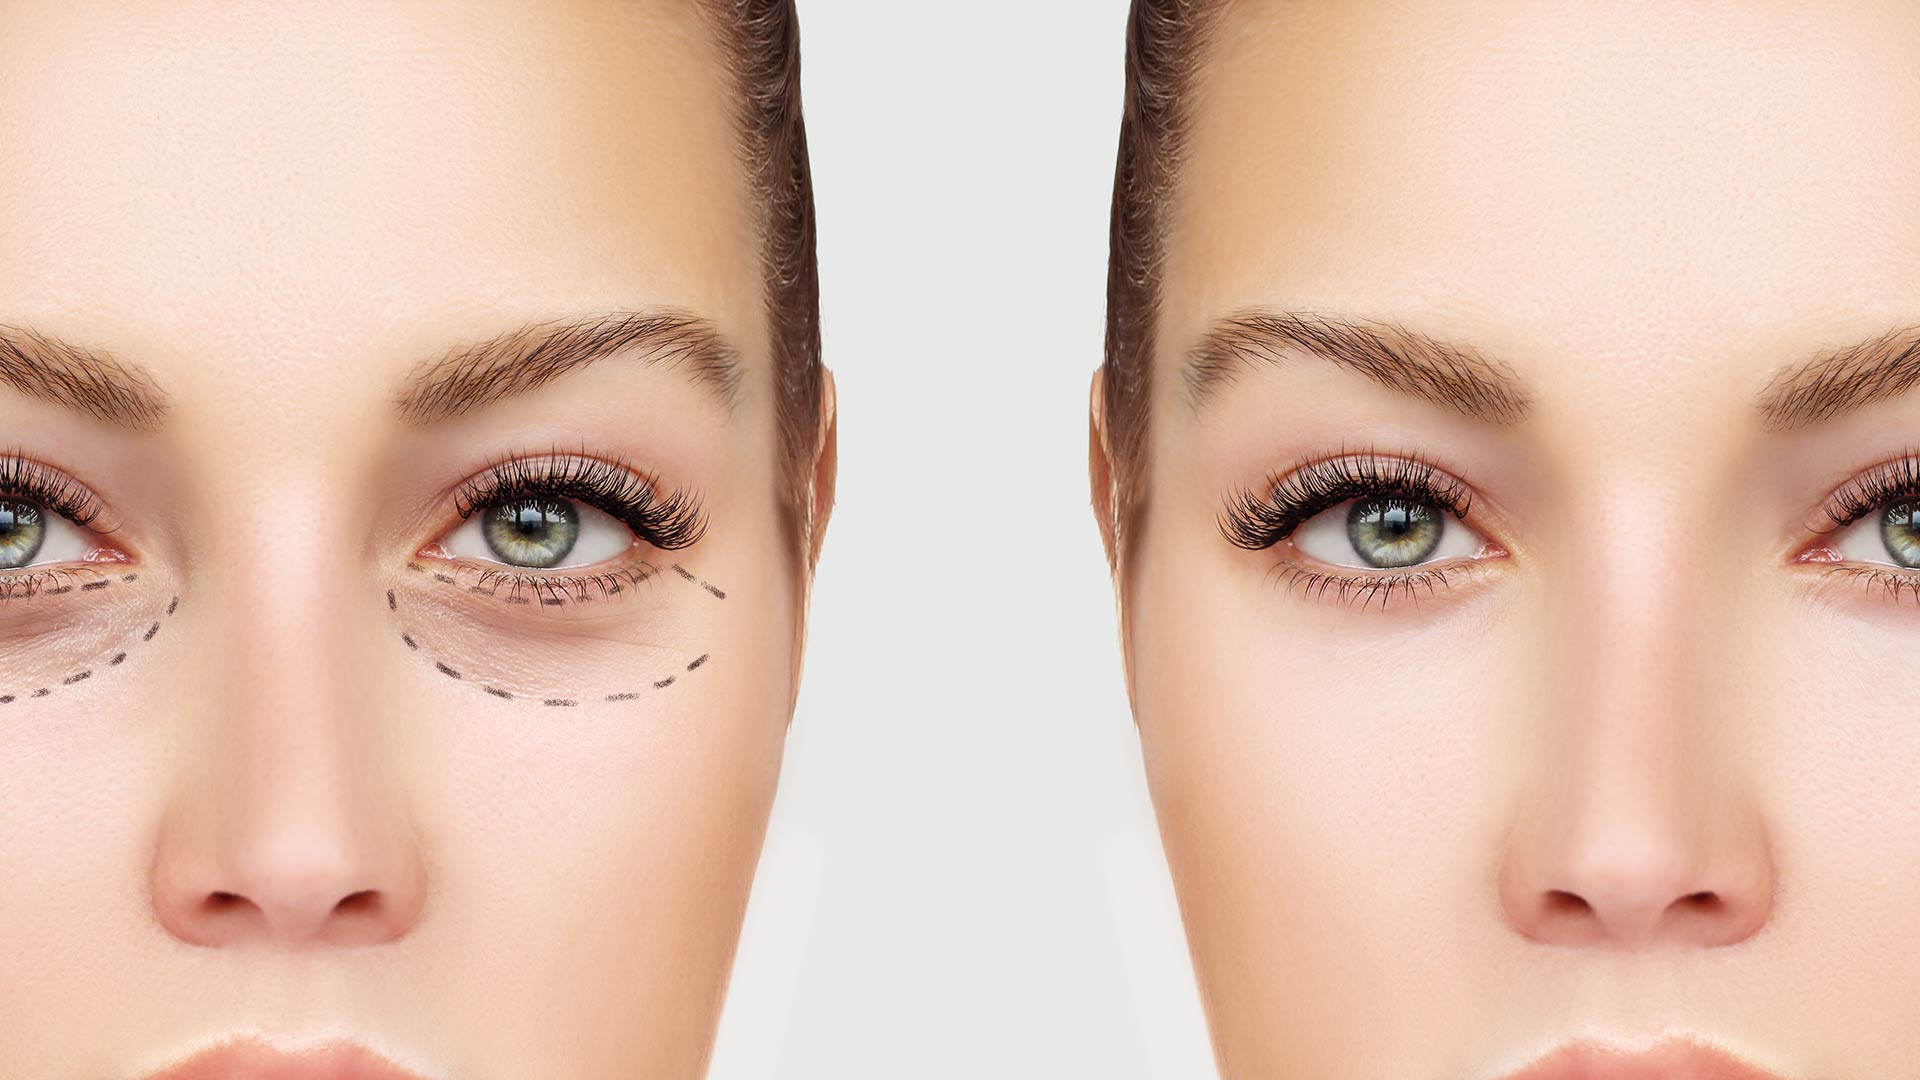 3 Non-Surgical Cosmetic Treatments That Make You Look 10 Years Younger